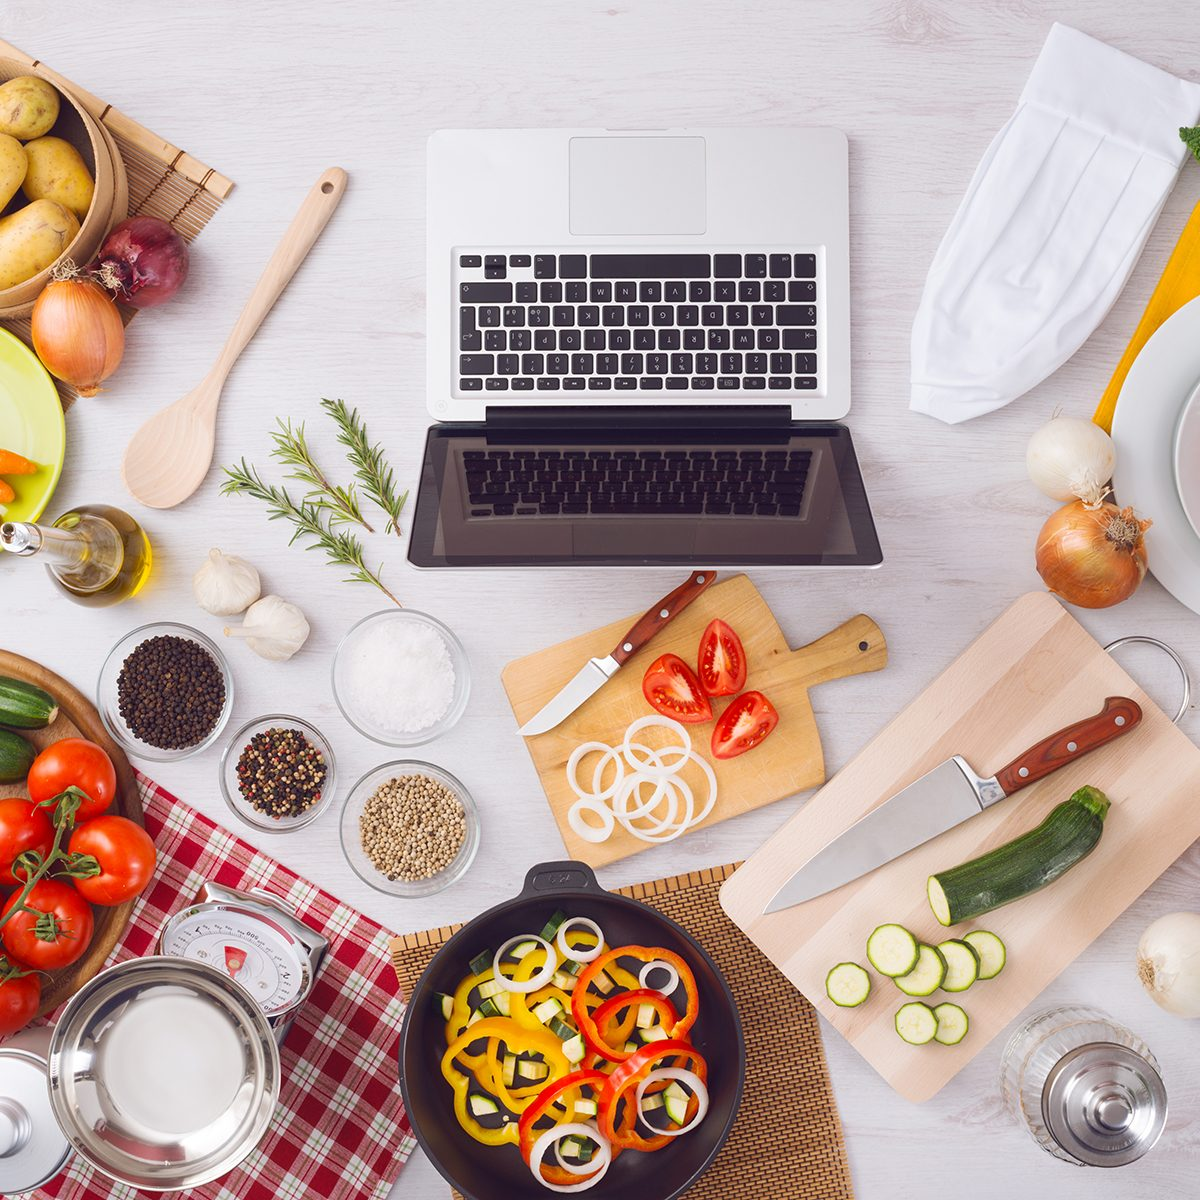 Home kitchen table top view with laptop, food ingredients, raw vegetables, kitchenware and utensils, top view